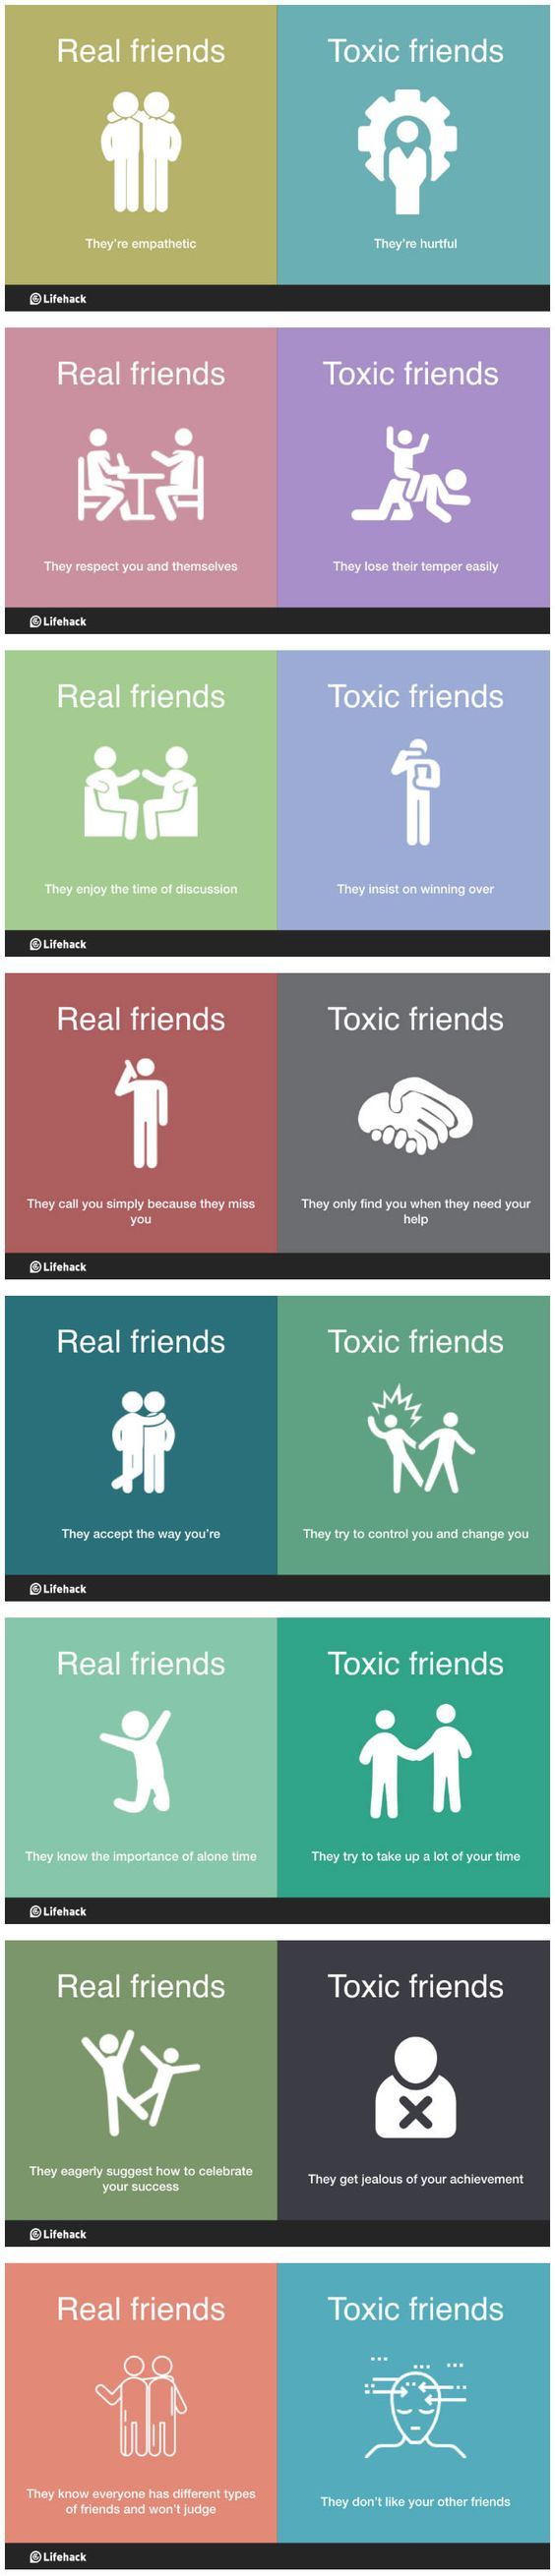 8 Ways To Differentiate Real Friends And Toxic Friends (By Lifehack)